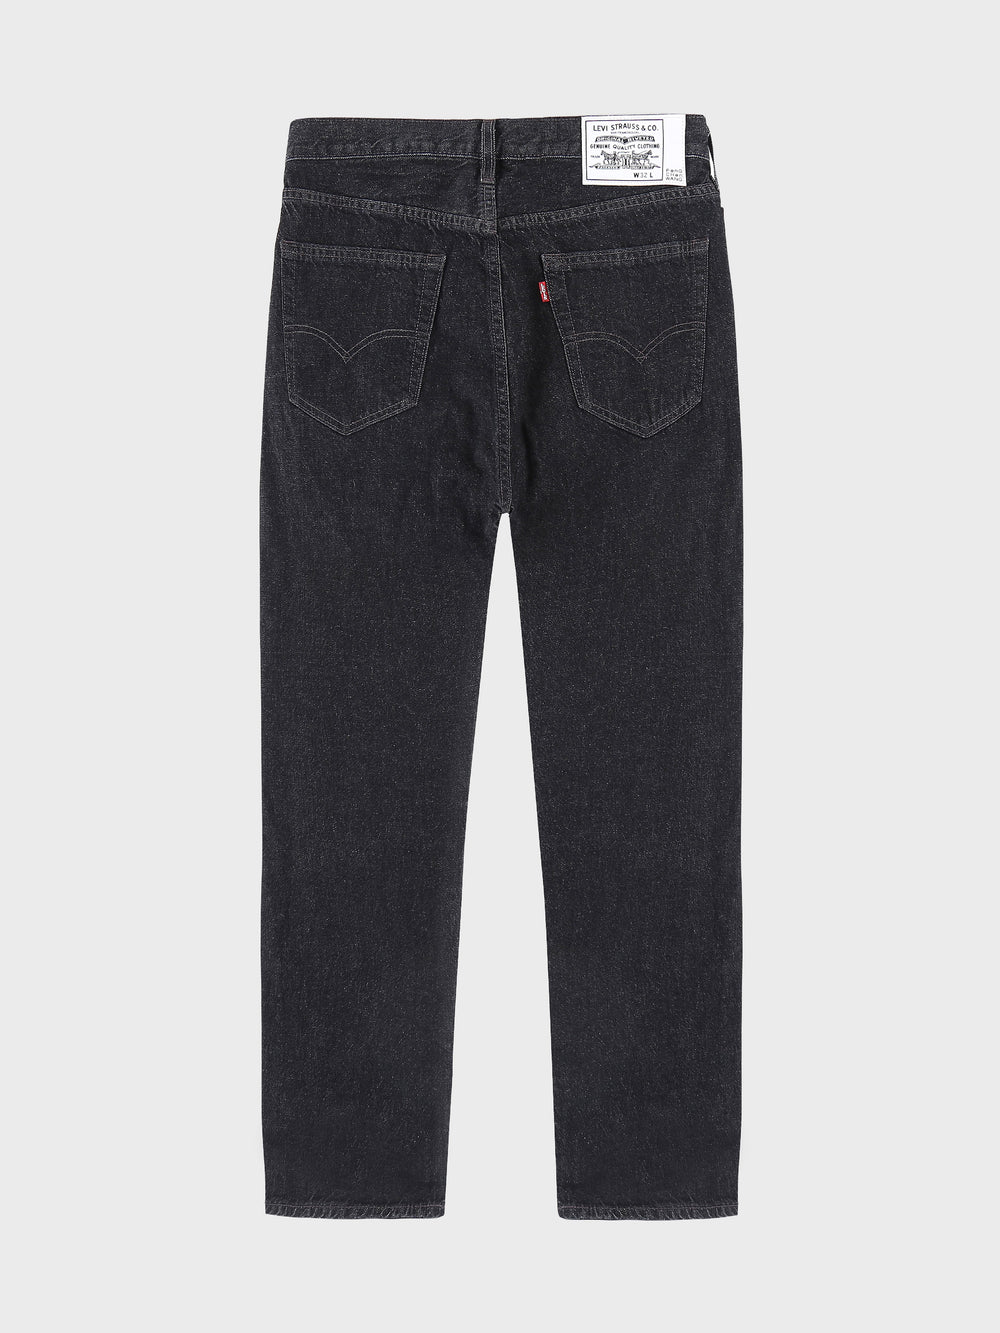 Feng Chen Wang × Levi's > Pleated Tapered Jeans